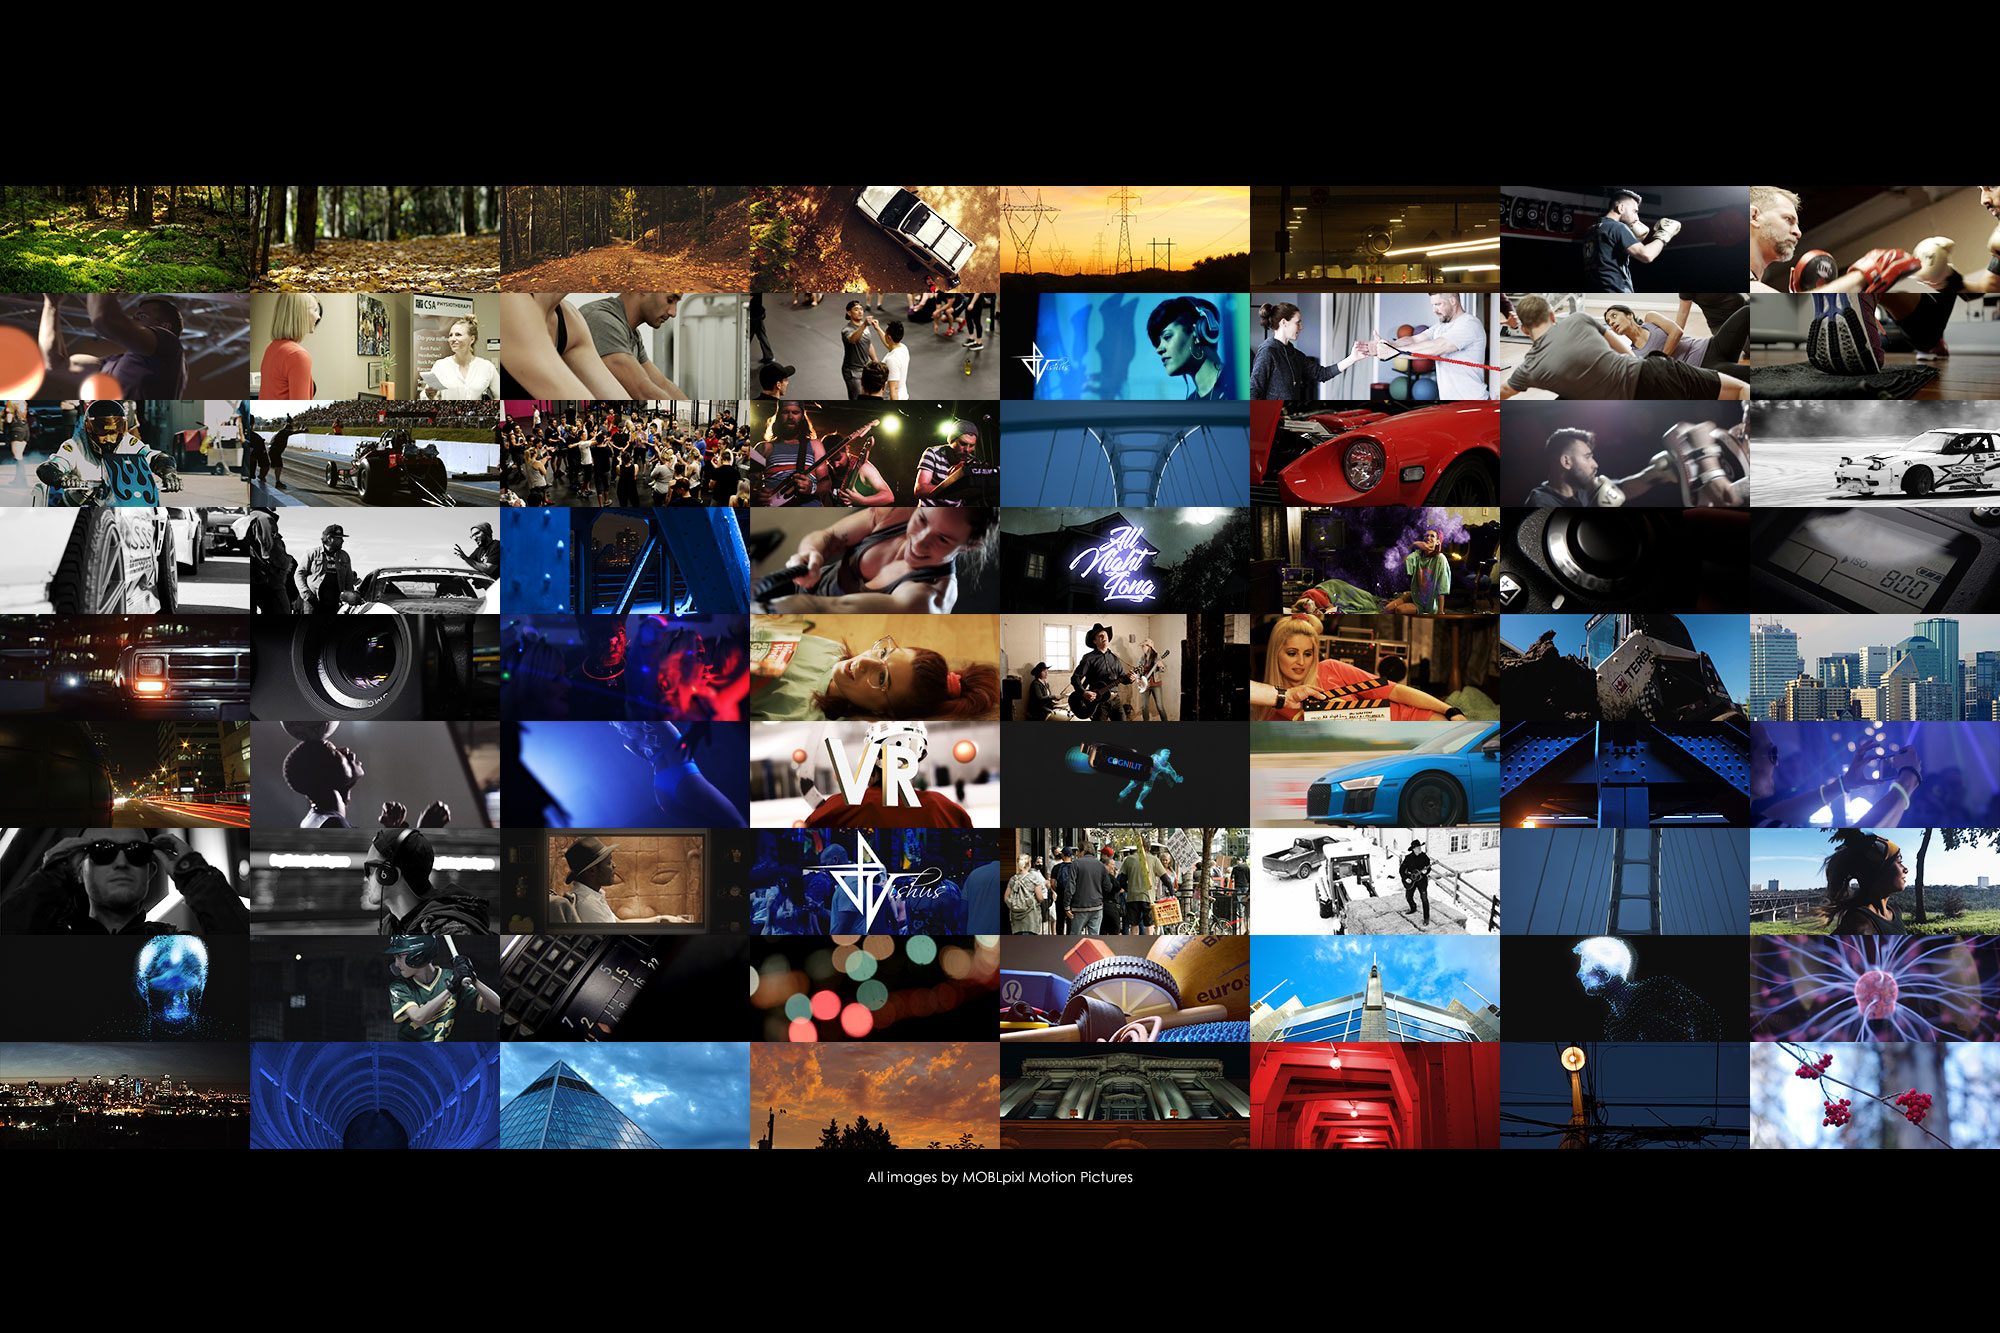 A small sample of images from from various video projects completed by MOBLpixl Motion Pictures.